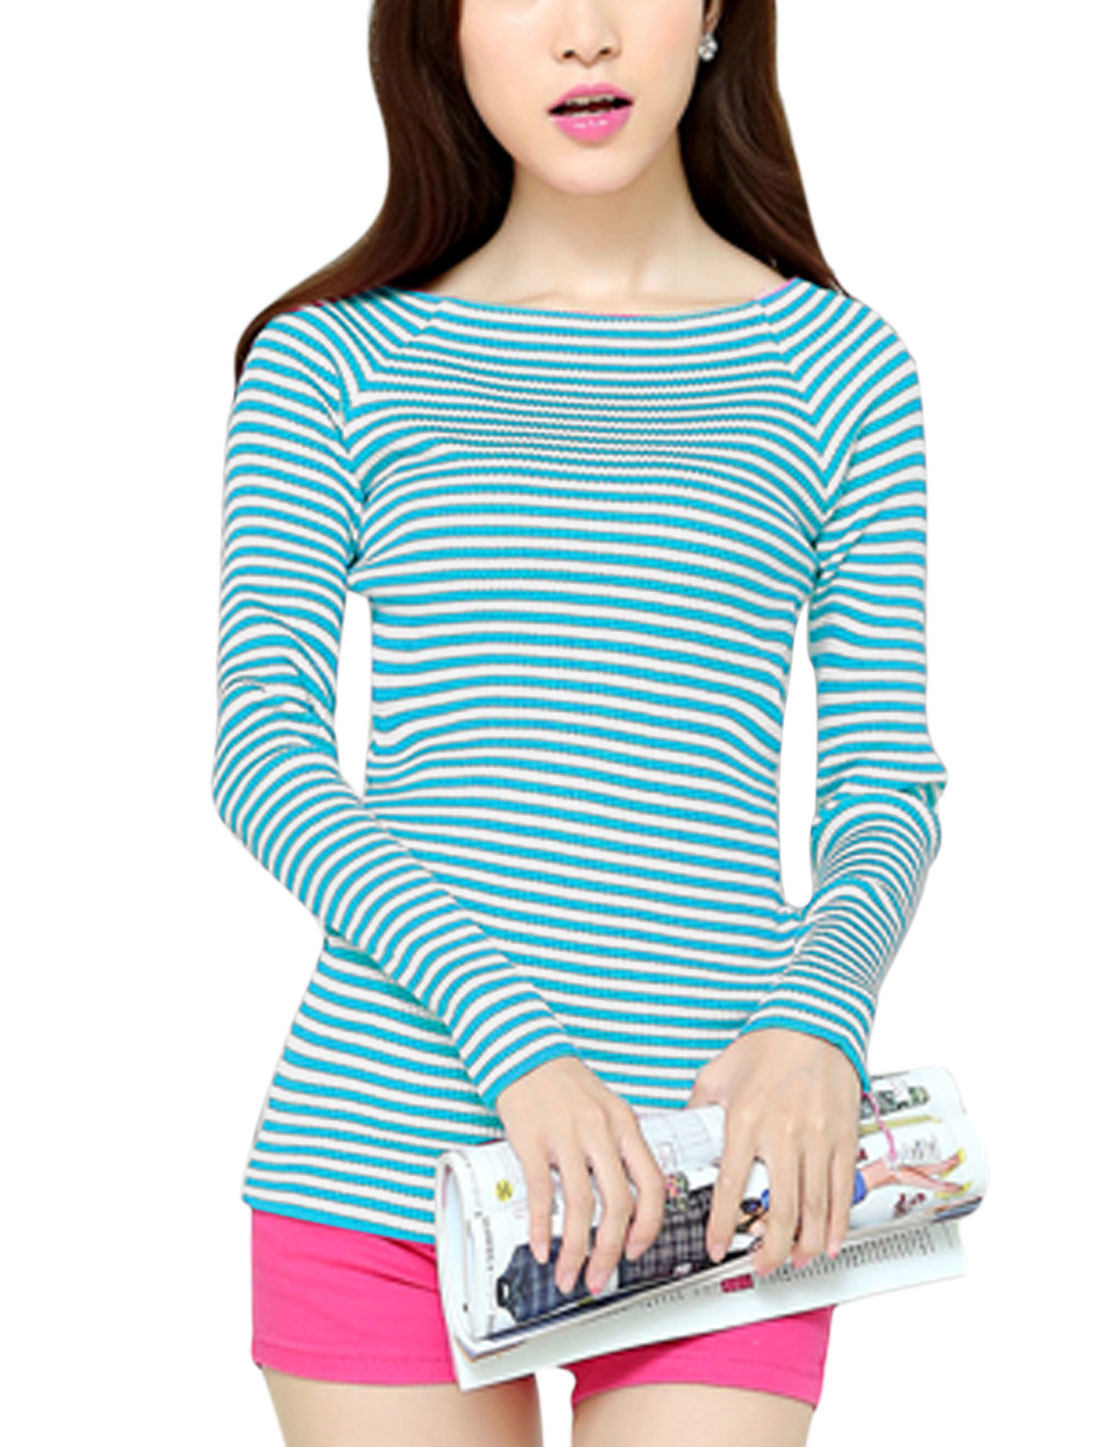 Stripes Raglan Sleeve Closed Fit Blue White Knit Shirt for Woman XS